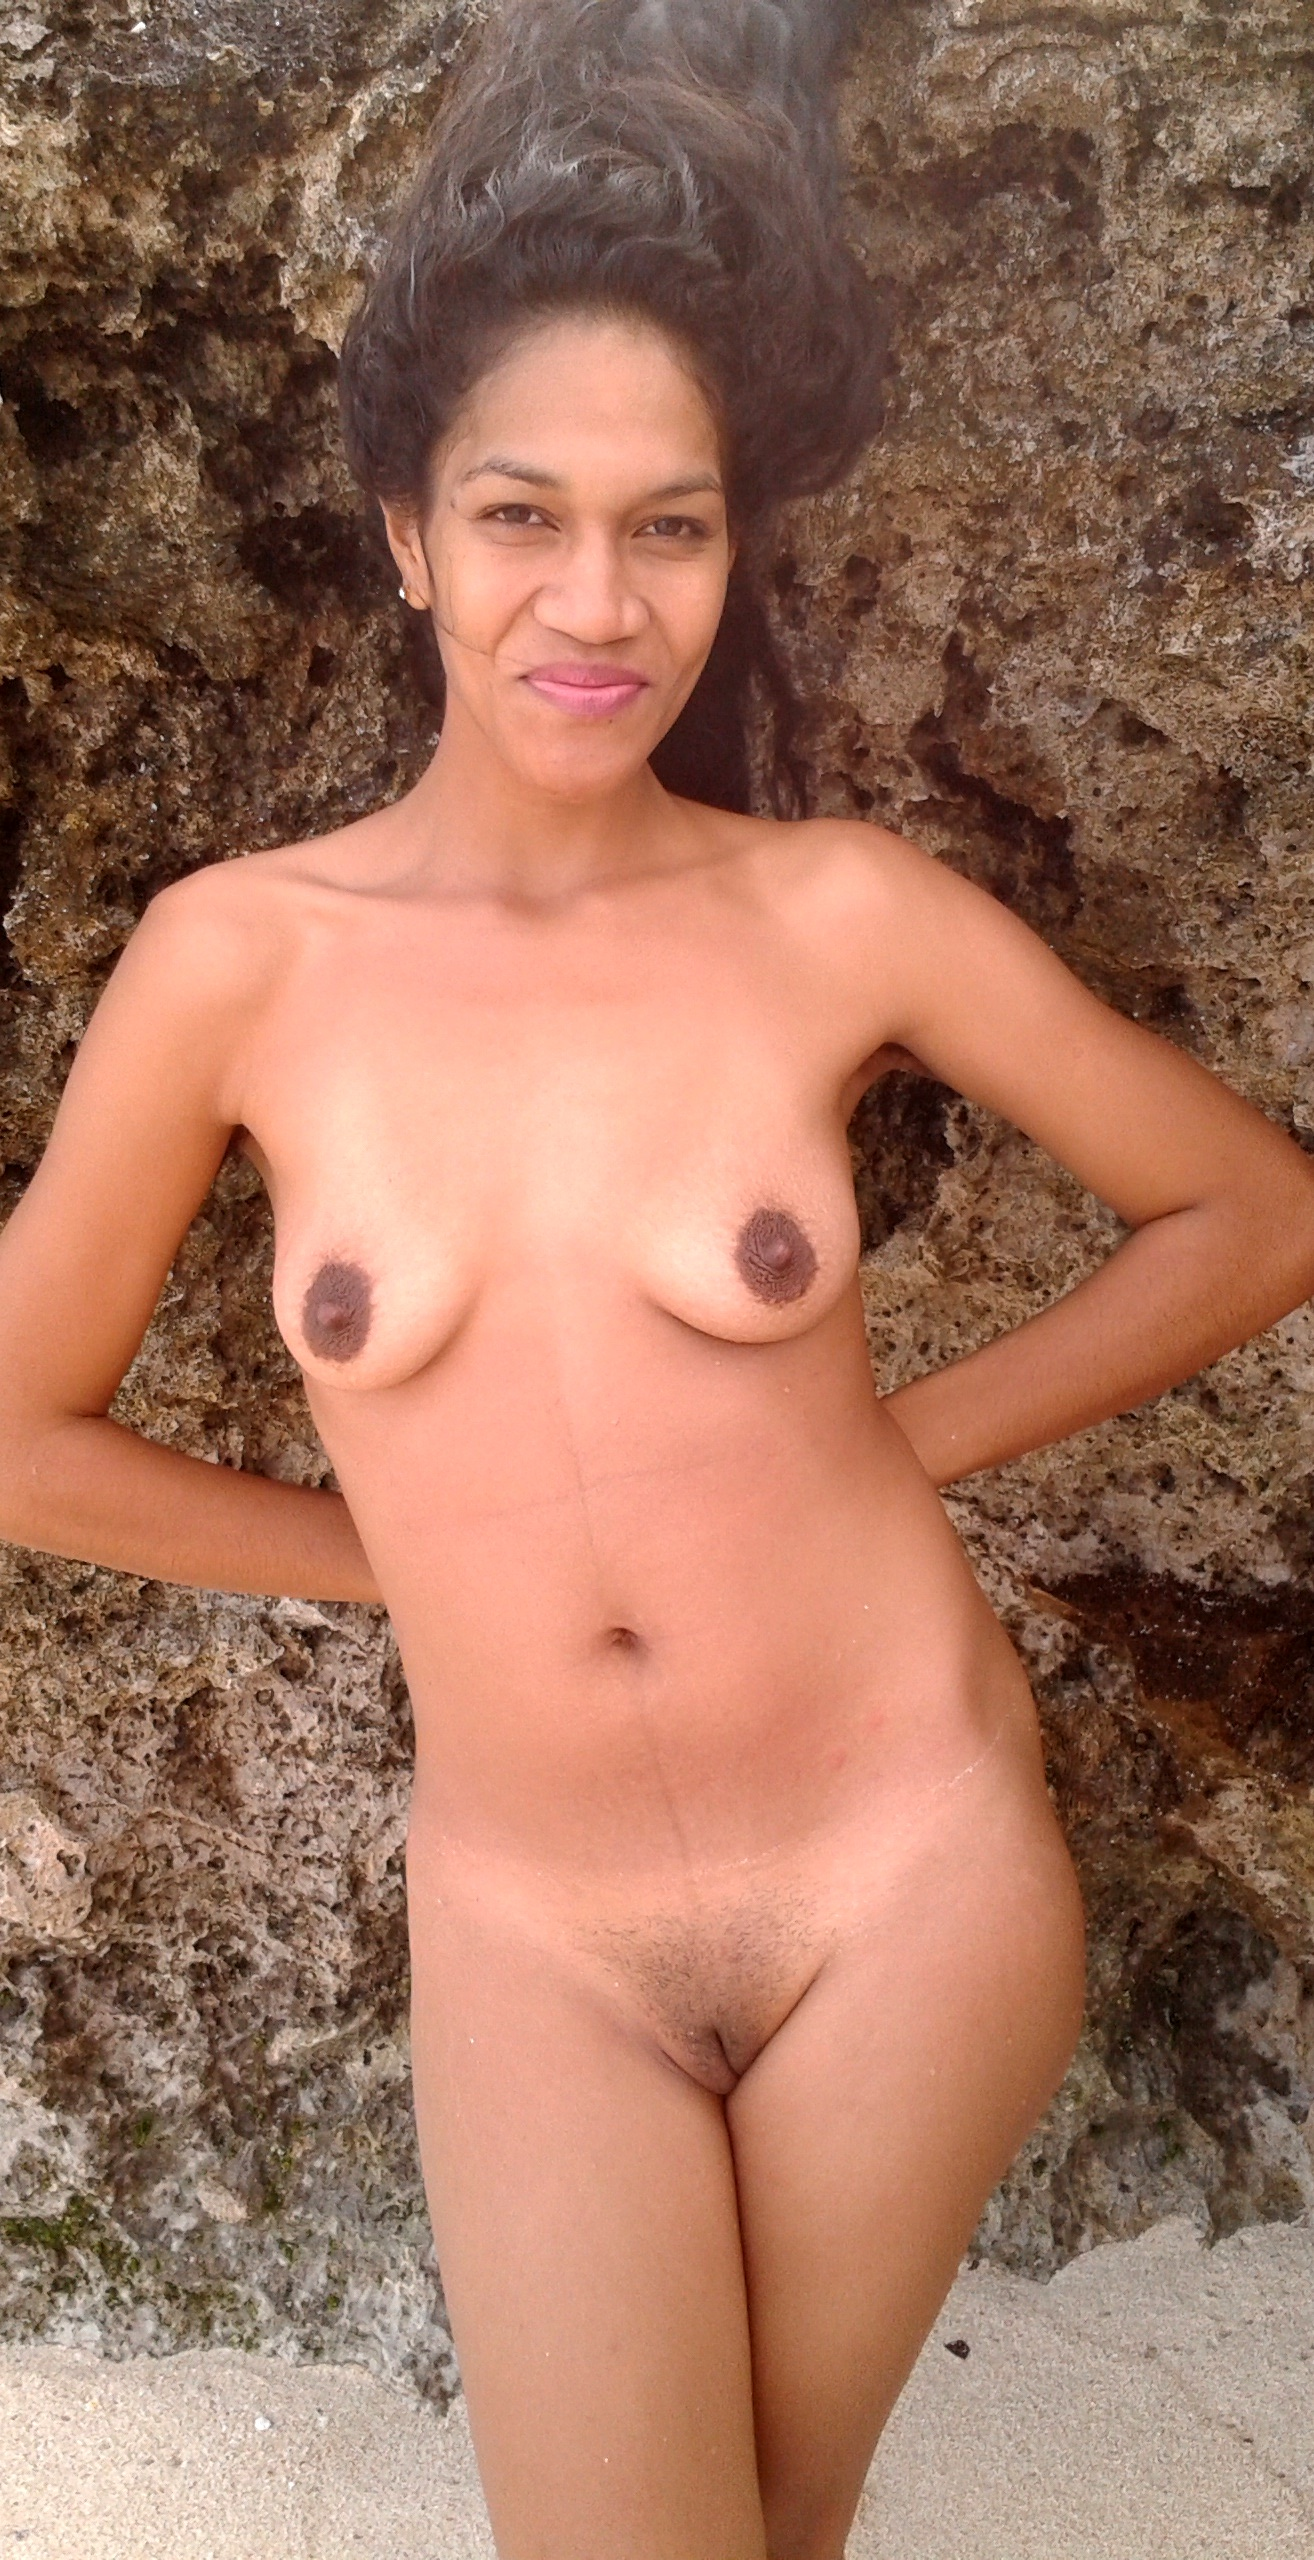 Arabic girl hot nude